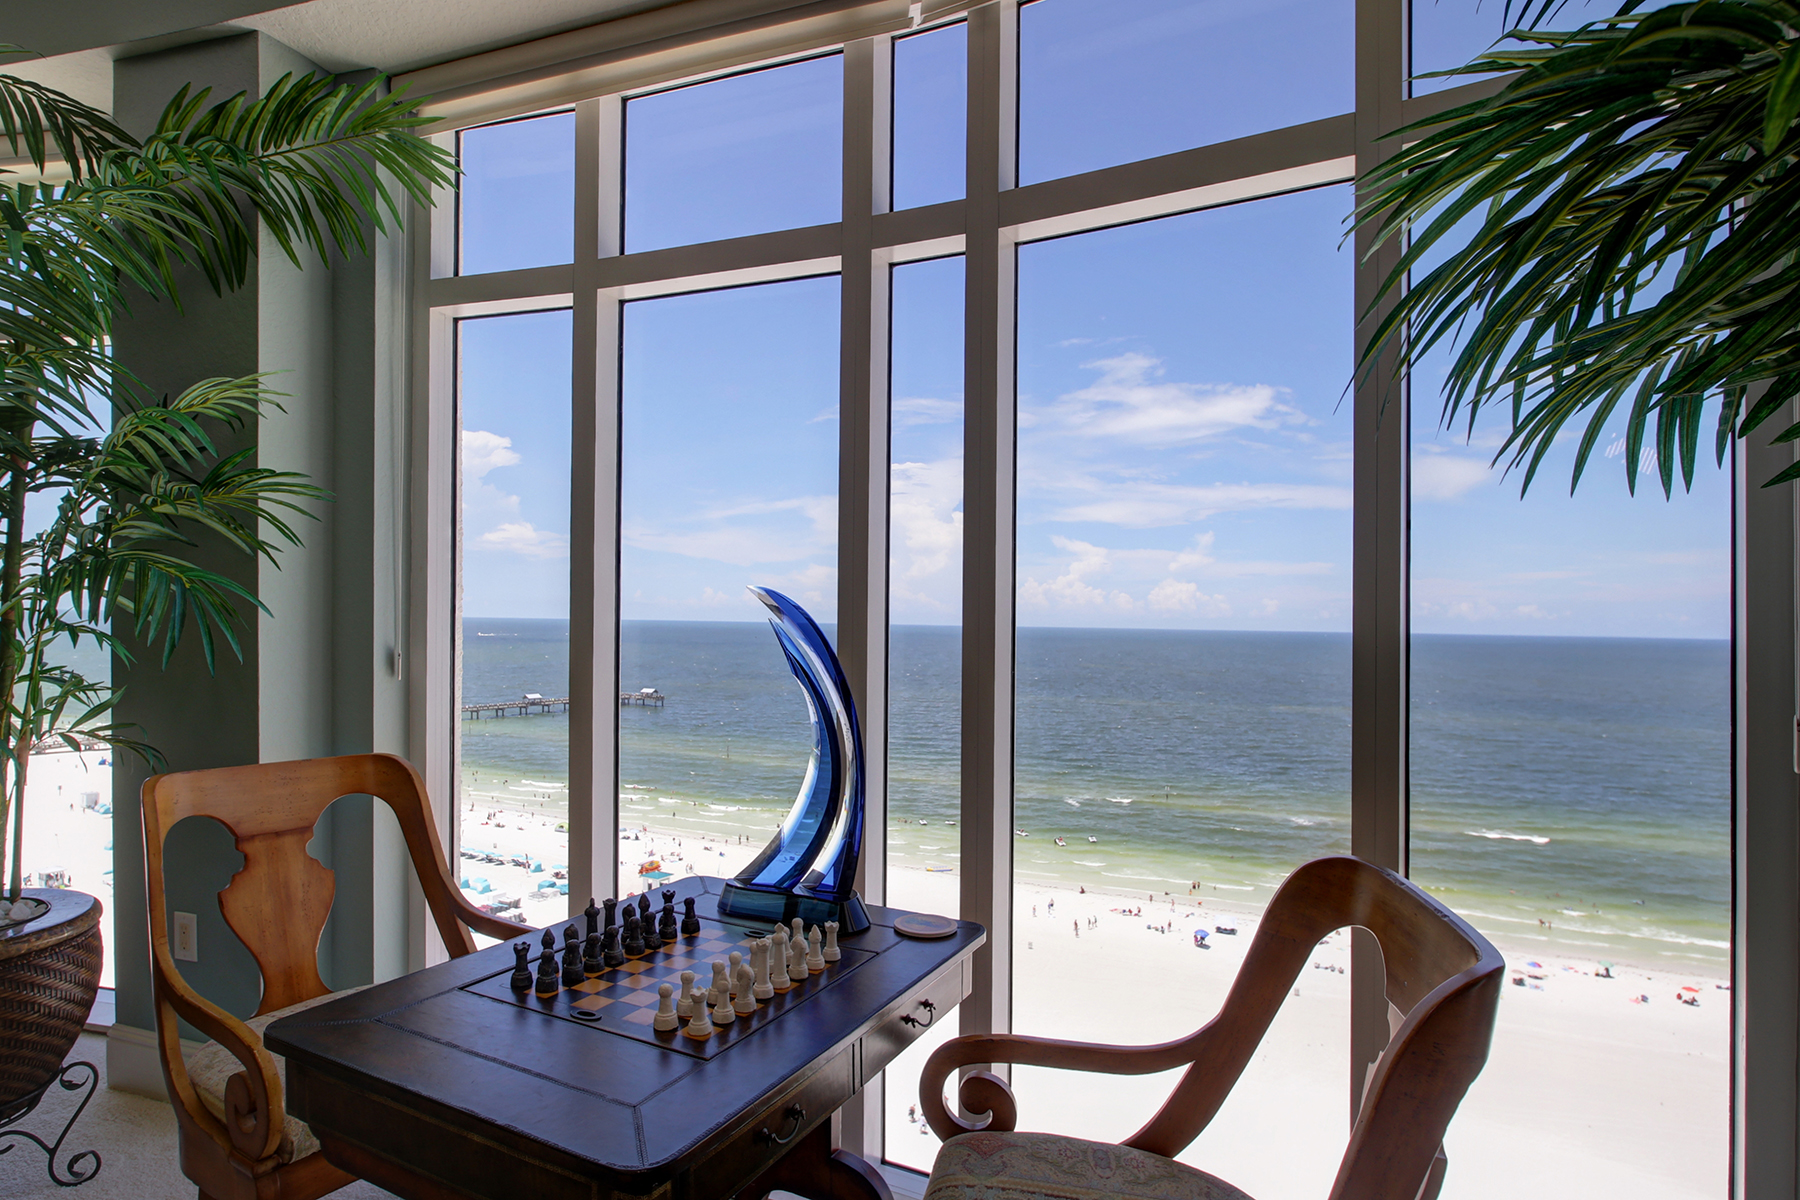 Condominium for Sale at MANDALAY BEACH CLUB 10 Papaya St 1501 Clearwater Beach, Florida 33767 United States